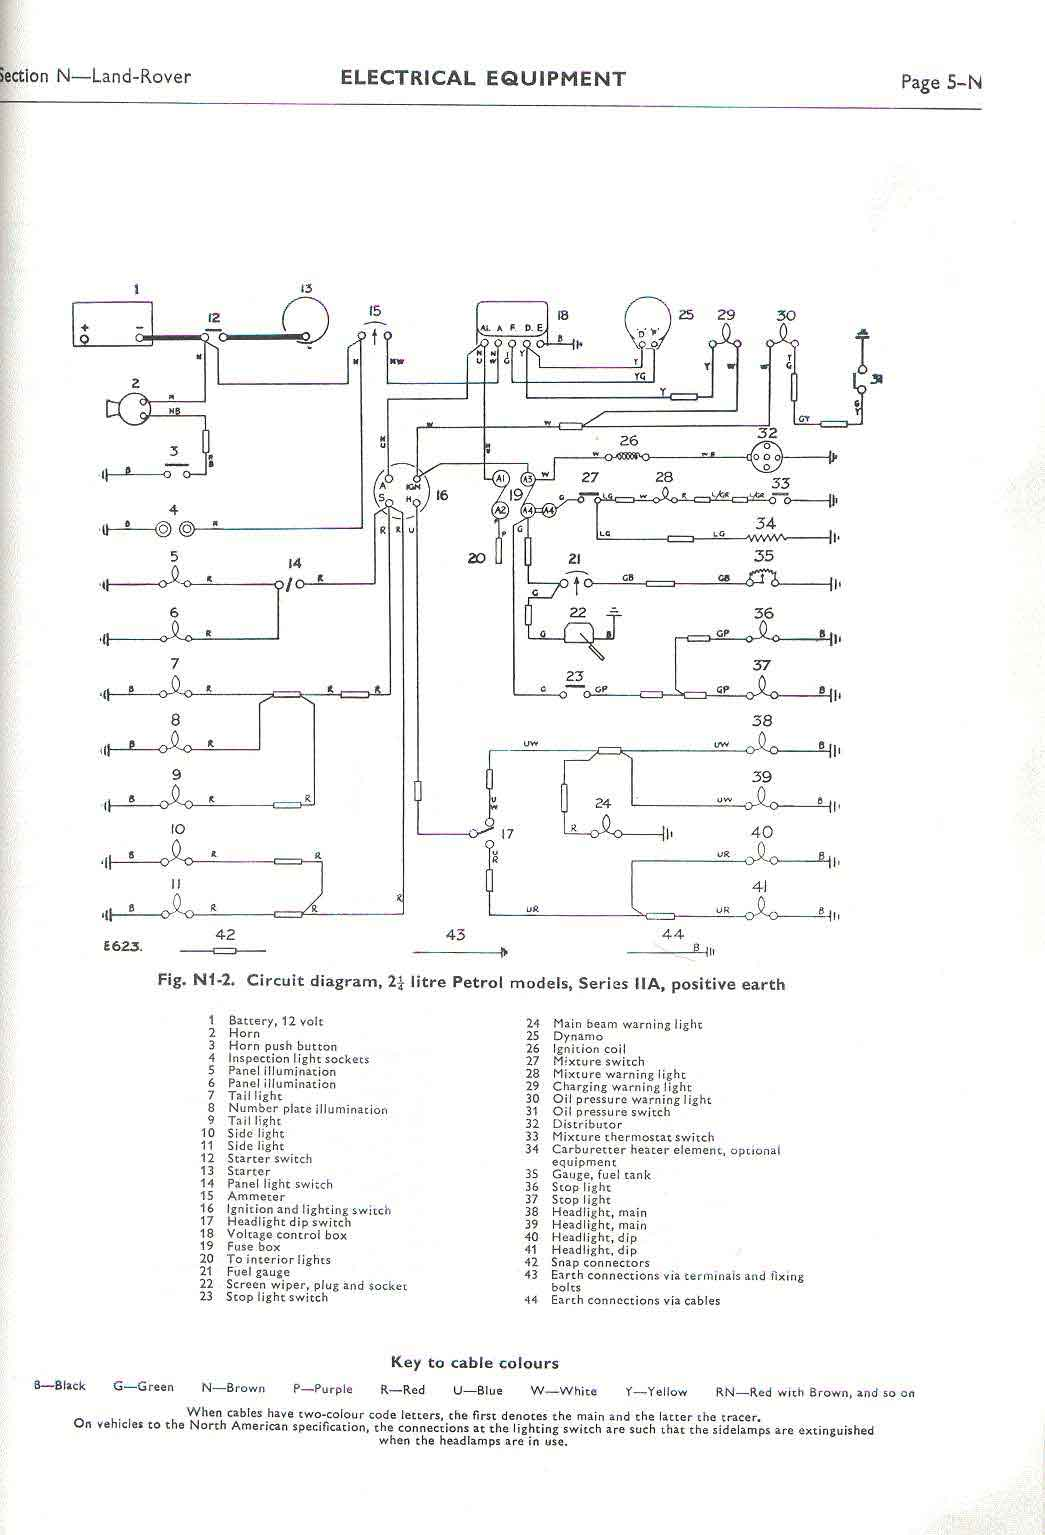 Land Rover Series 2 Diesel Wiring Diagram Starting Know About 1970 Camaro Haynes Faq Repair Maintenance Electrical Rh Lrfaq Org